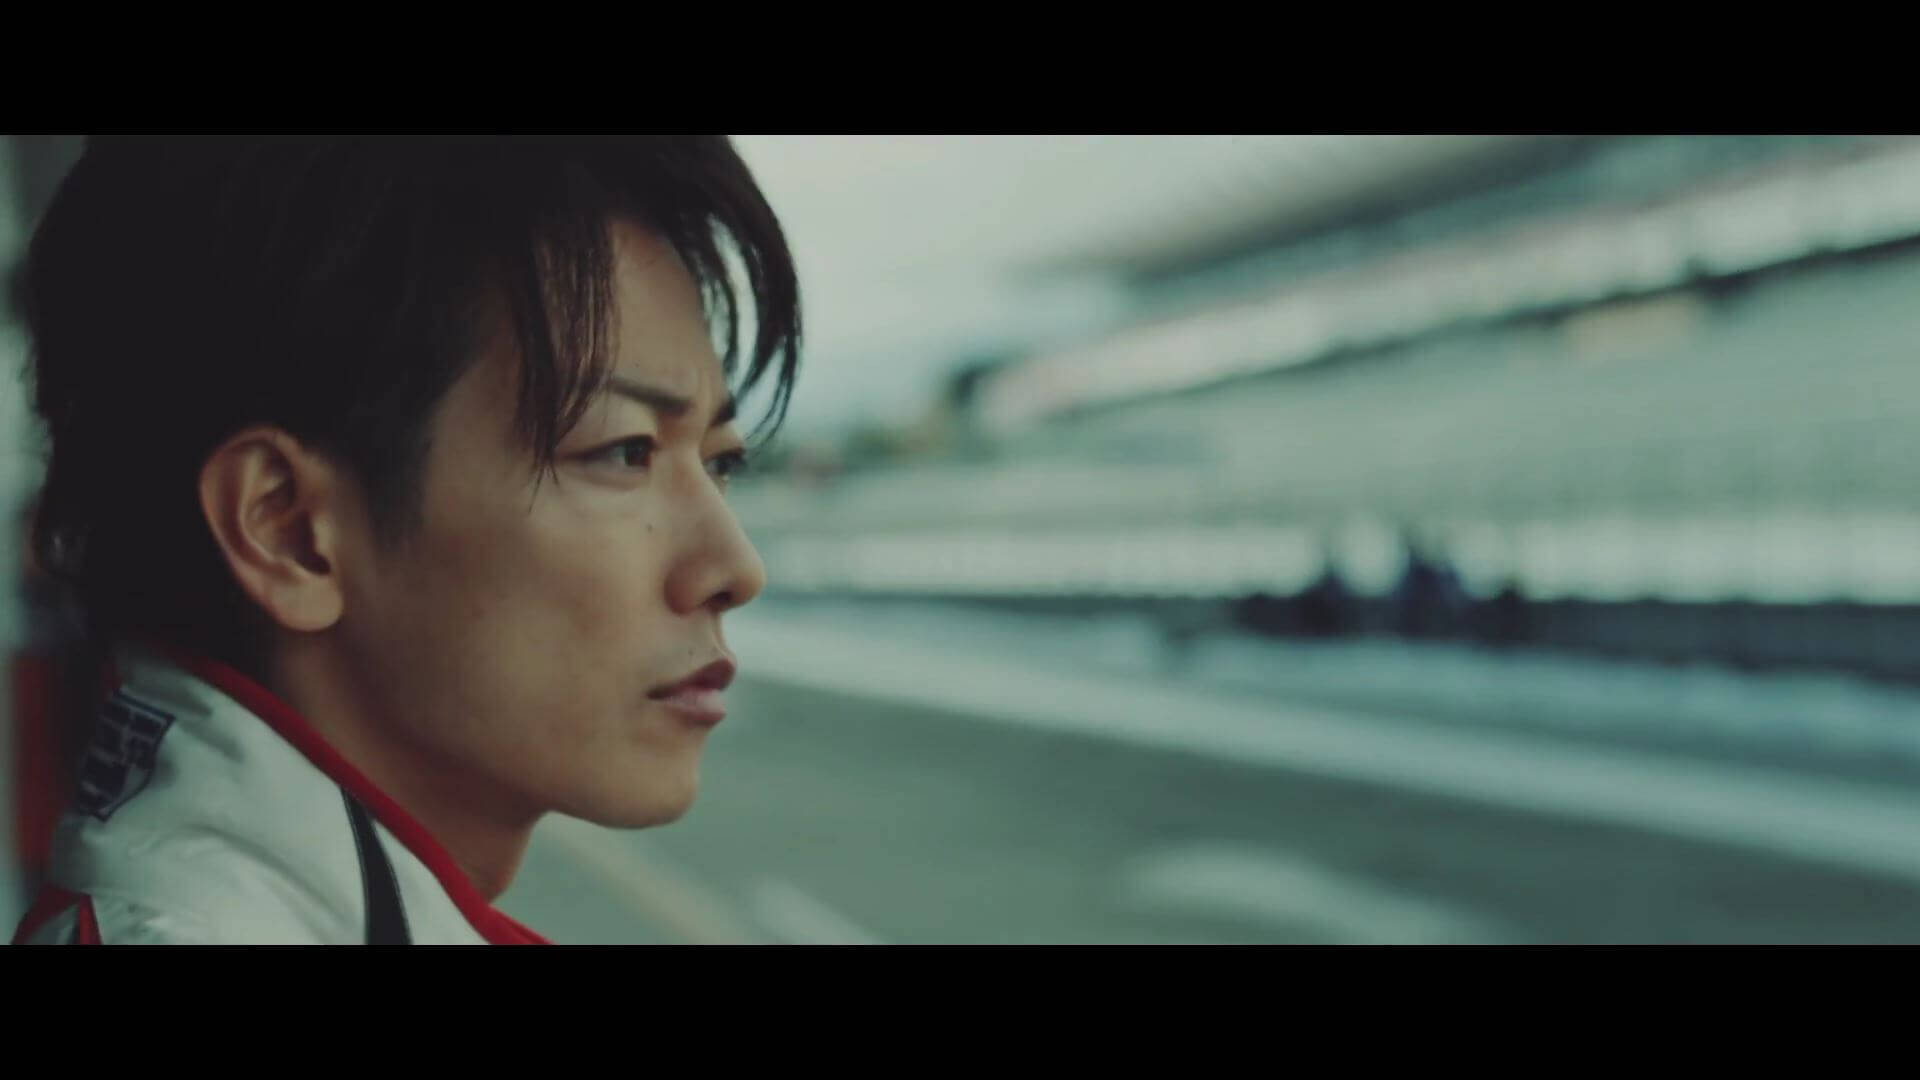 TOYOTA GAZOO Racing TAKERU SATOH MEETS GAZOO MORIZO mp4 20170712 101514 898